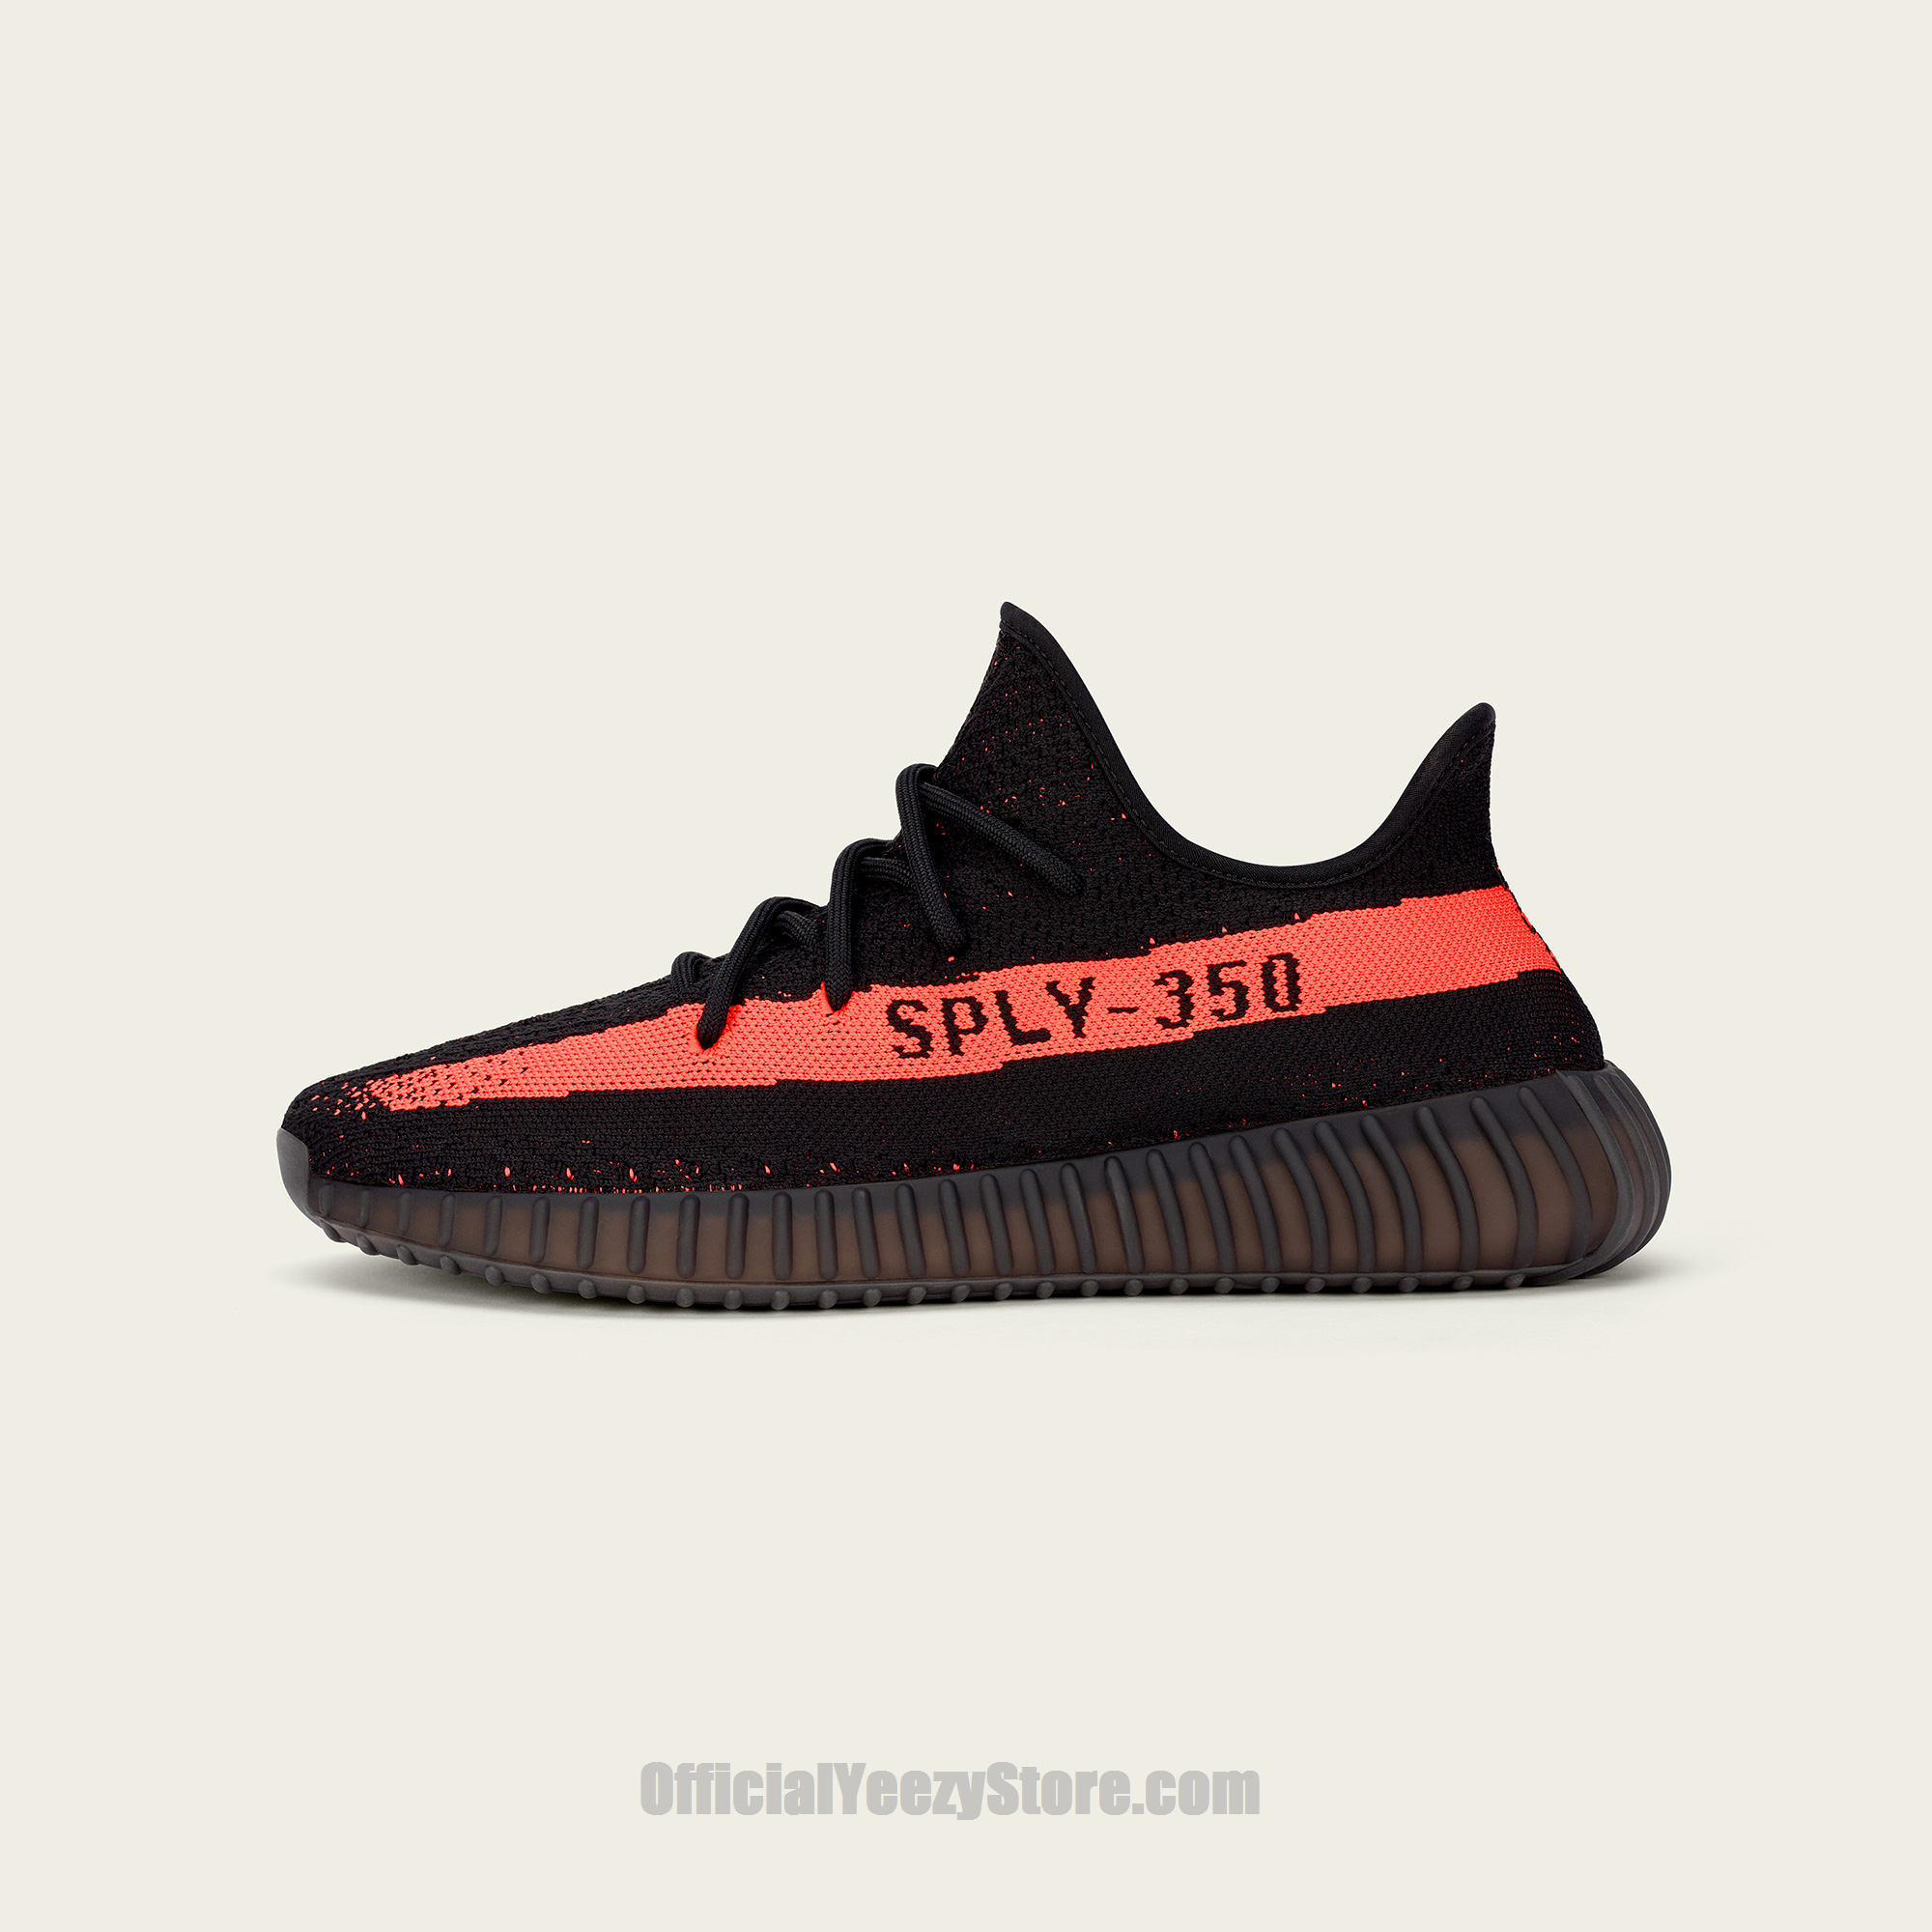 d0fc15ac The Black Friday Collection Yeezy 350 V2 by Kanye x Adidas will be ...